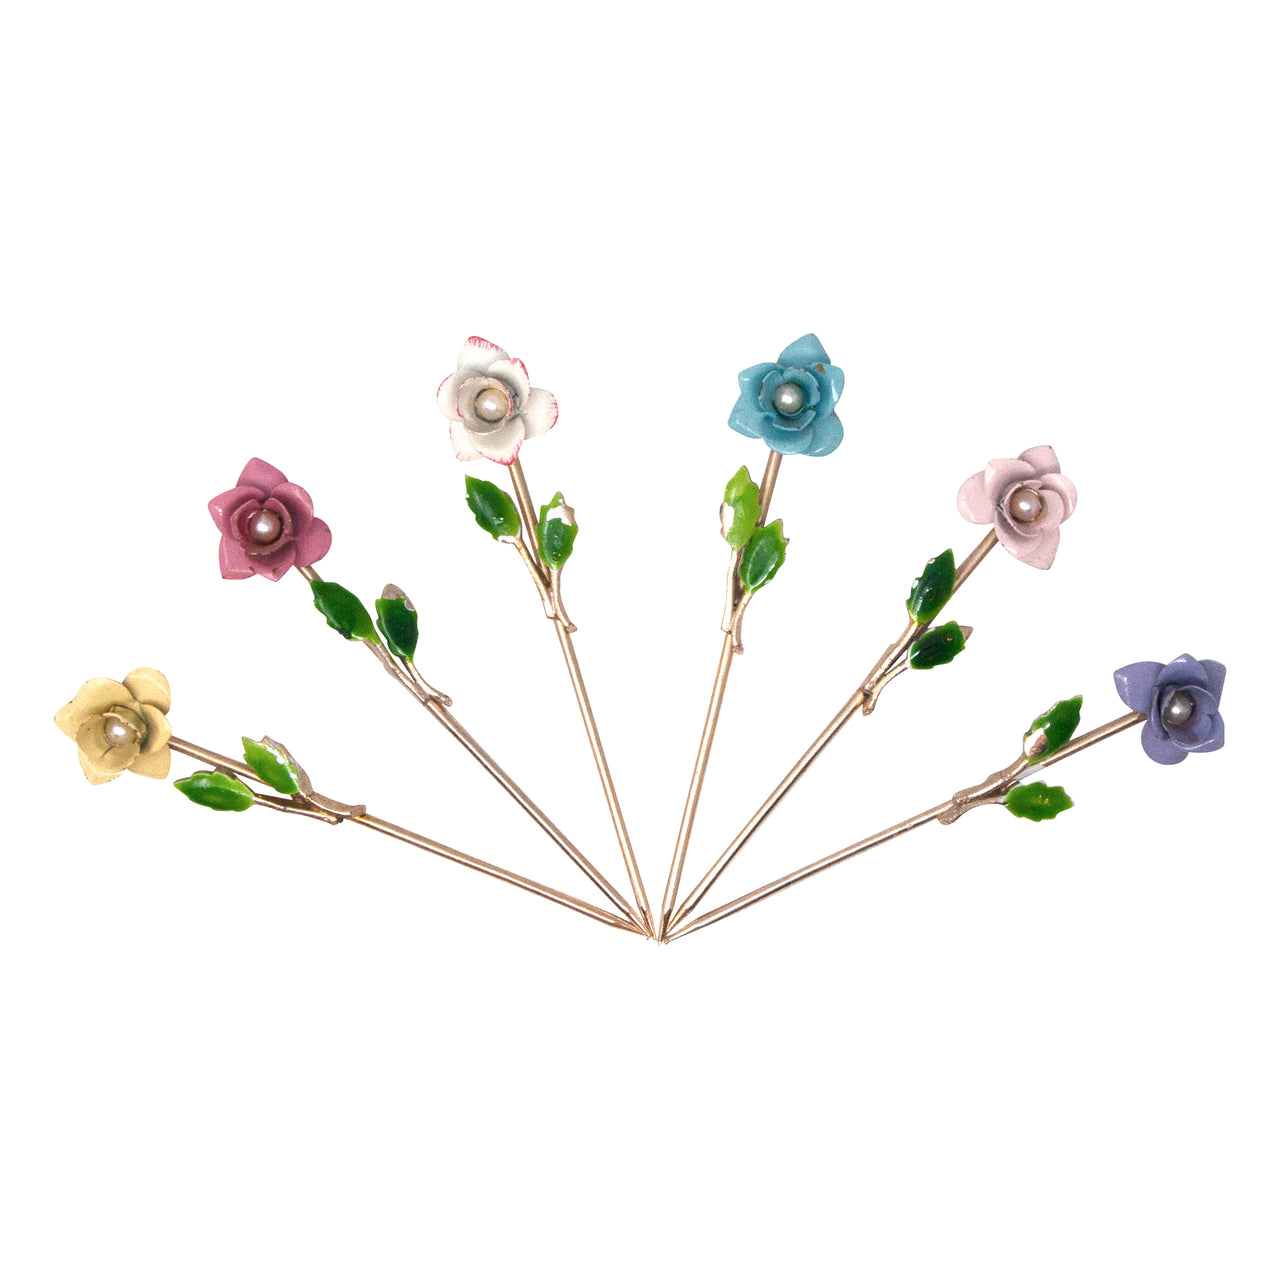 Vintage Pearl Center Multi Color Floral Cocktail Picks | The Hour Shop